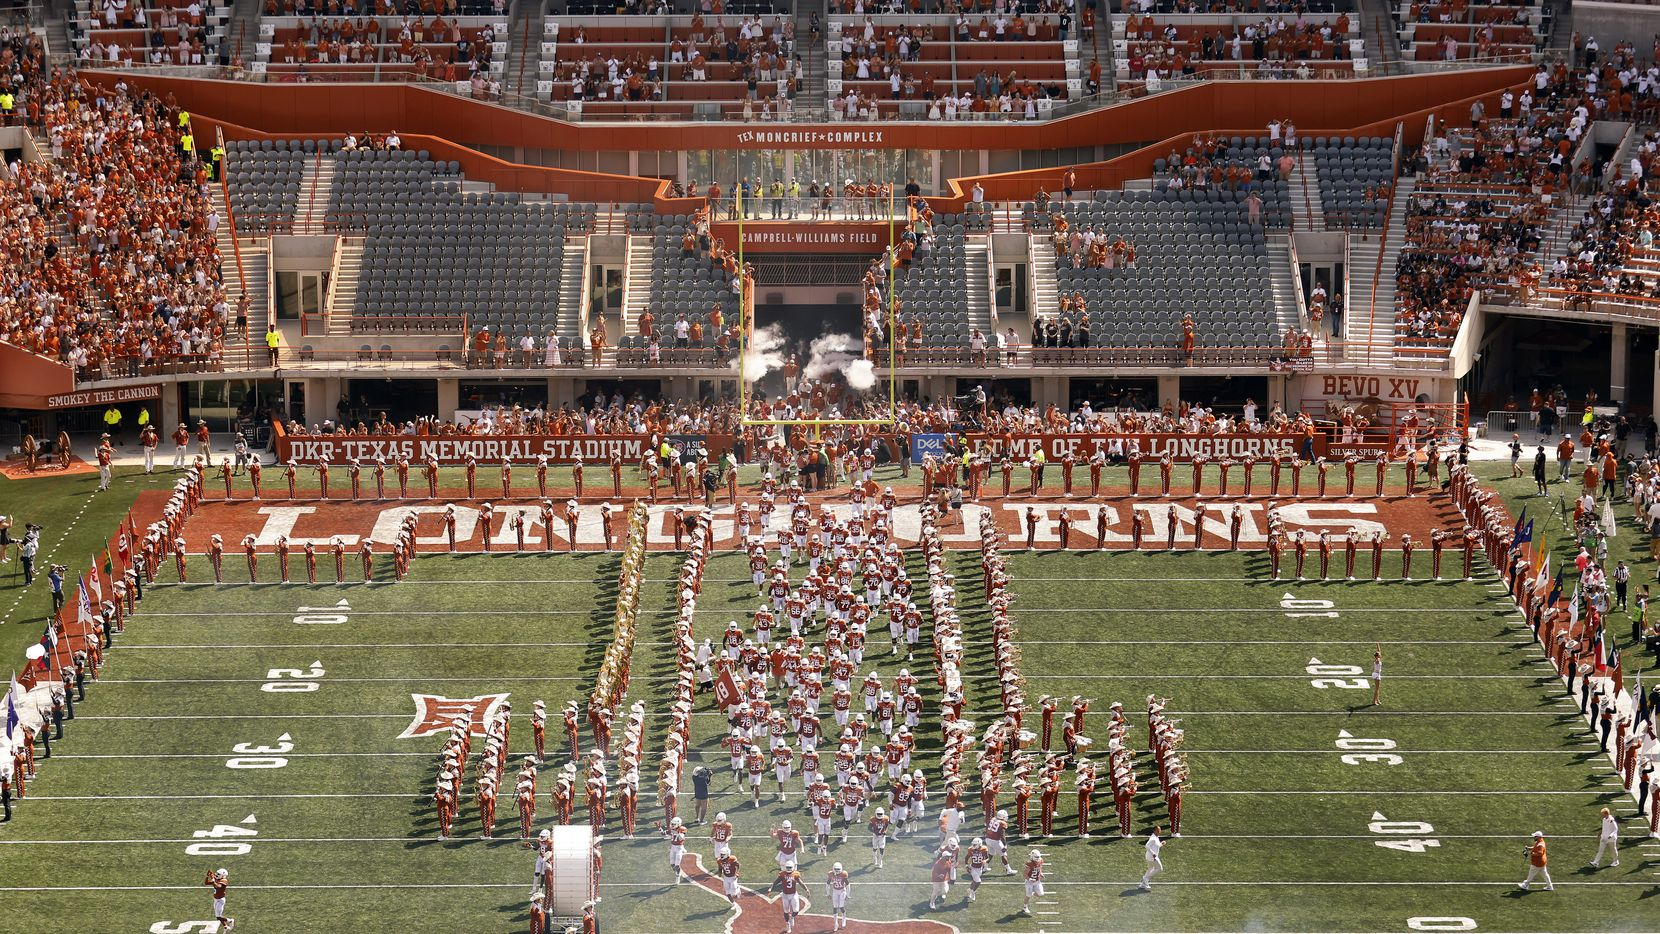 The Texas Longhorns football team sprints down the middle of the field as they introduced to the DKR-Texas Memorial Stadium crowd in Austin, Saturday, September 4, 2021.